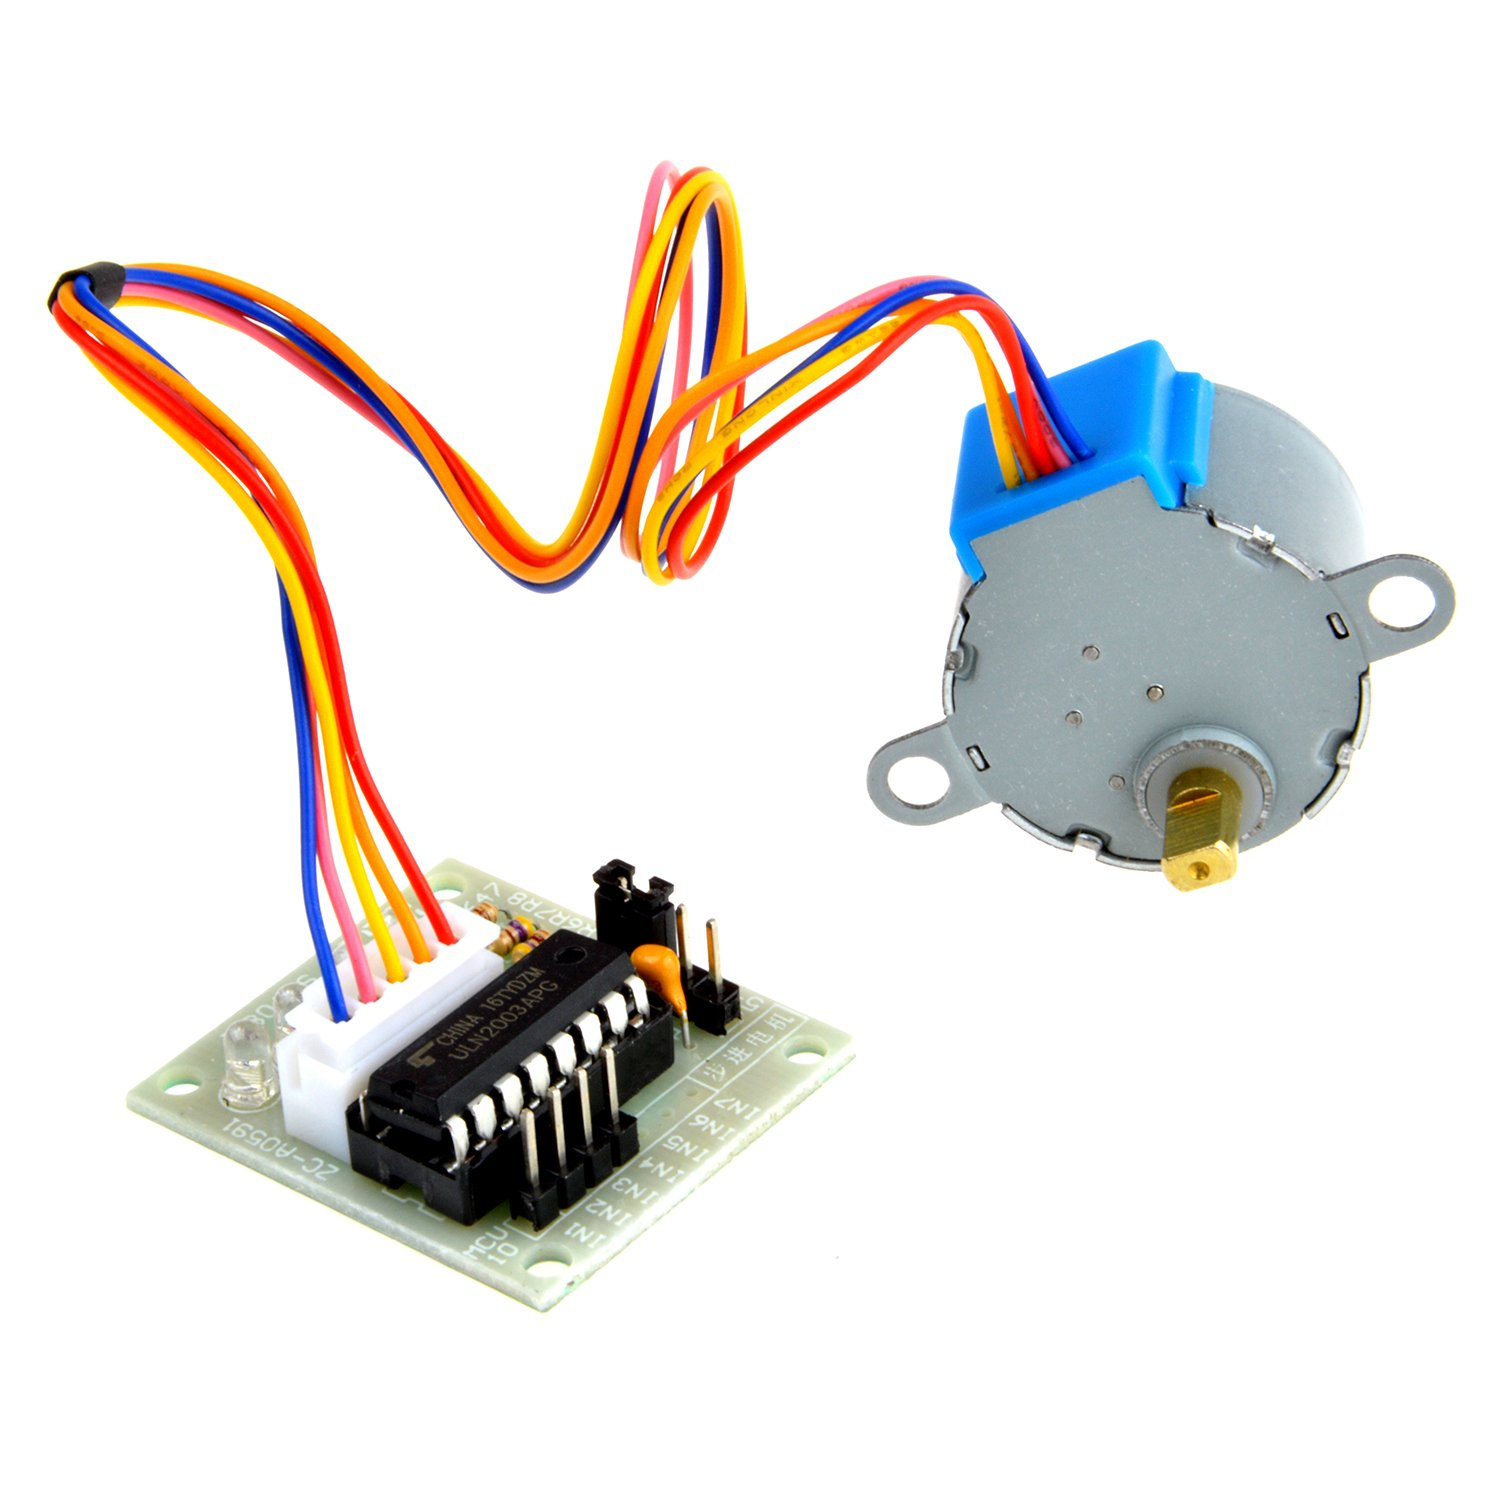 Neuftech DC 5V 4 Phase 5 Cable Stepper Motor 28BYJ-48 and driver board ULN2003 module for Arduino EU-ULN2003 Driver +Step motor